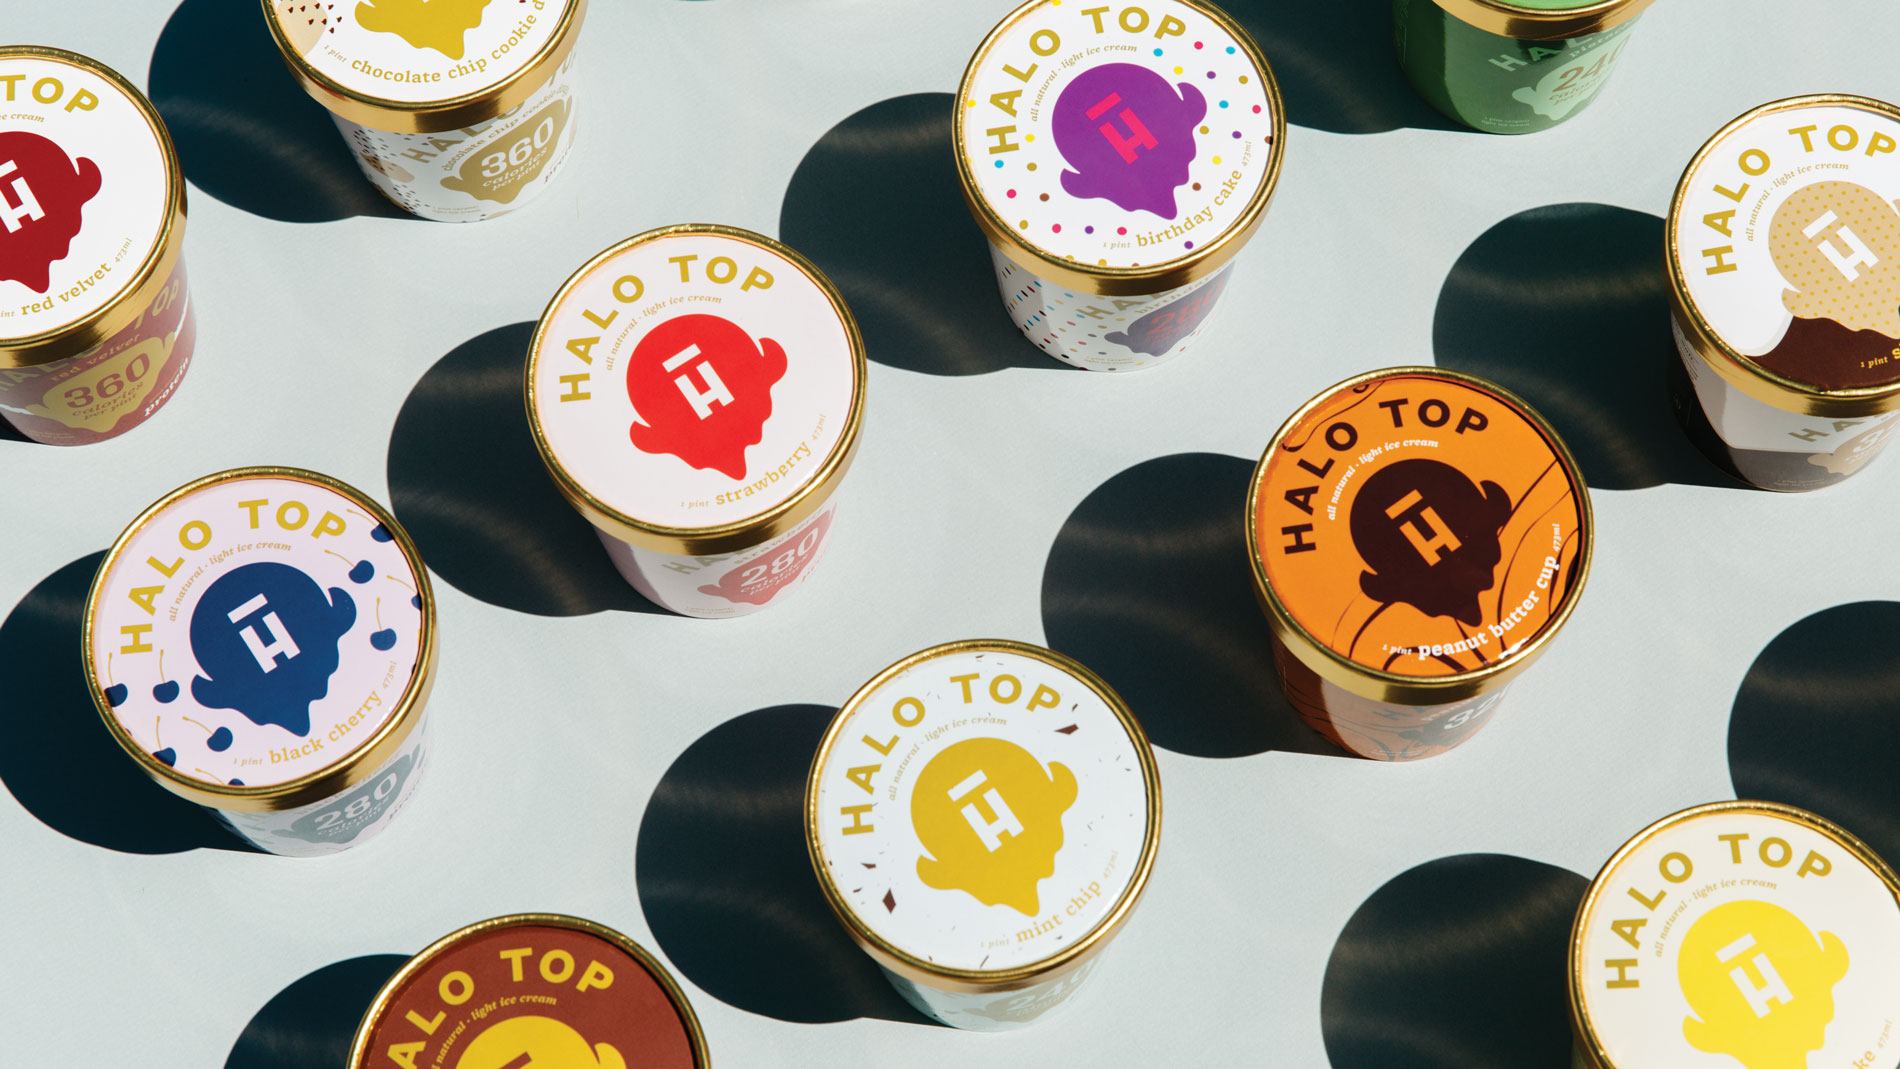 Everything You Need to Know About Halo Top, America's New Favorite Healthy Ice Cream